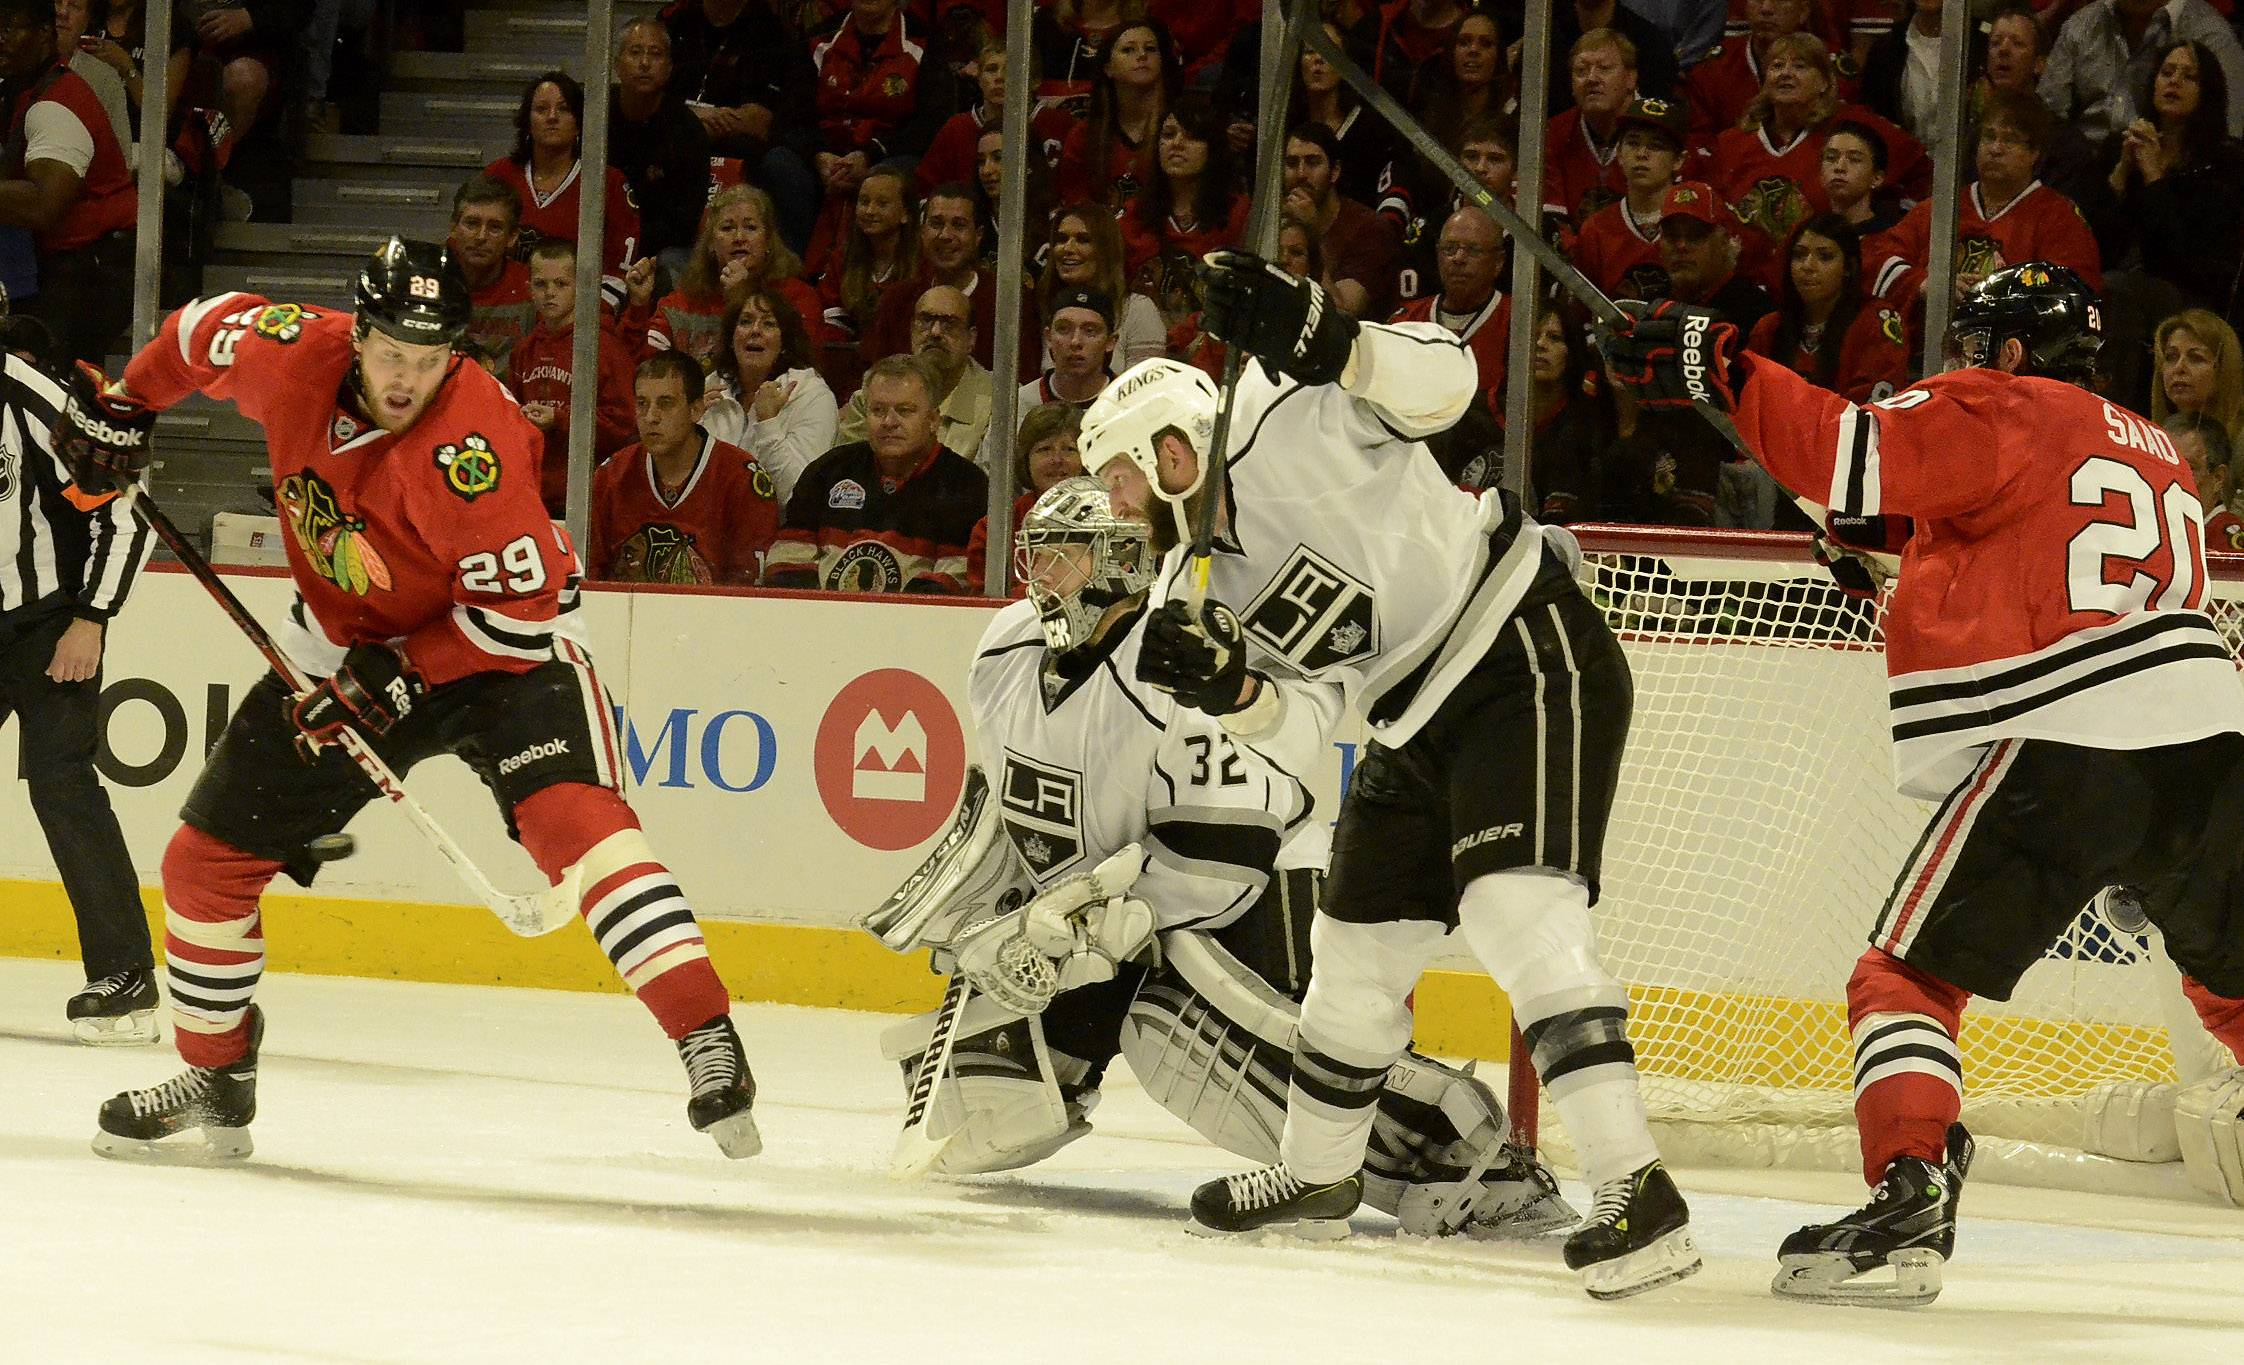 Scenes from Game 1 of the Blackhawks-Kings playoff series Saturday, June 1.